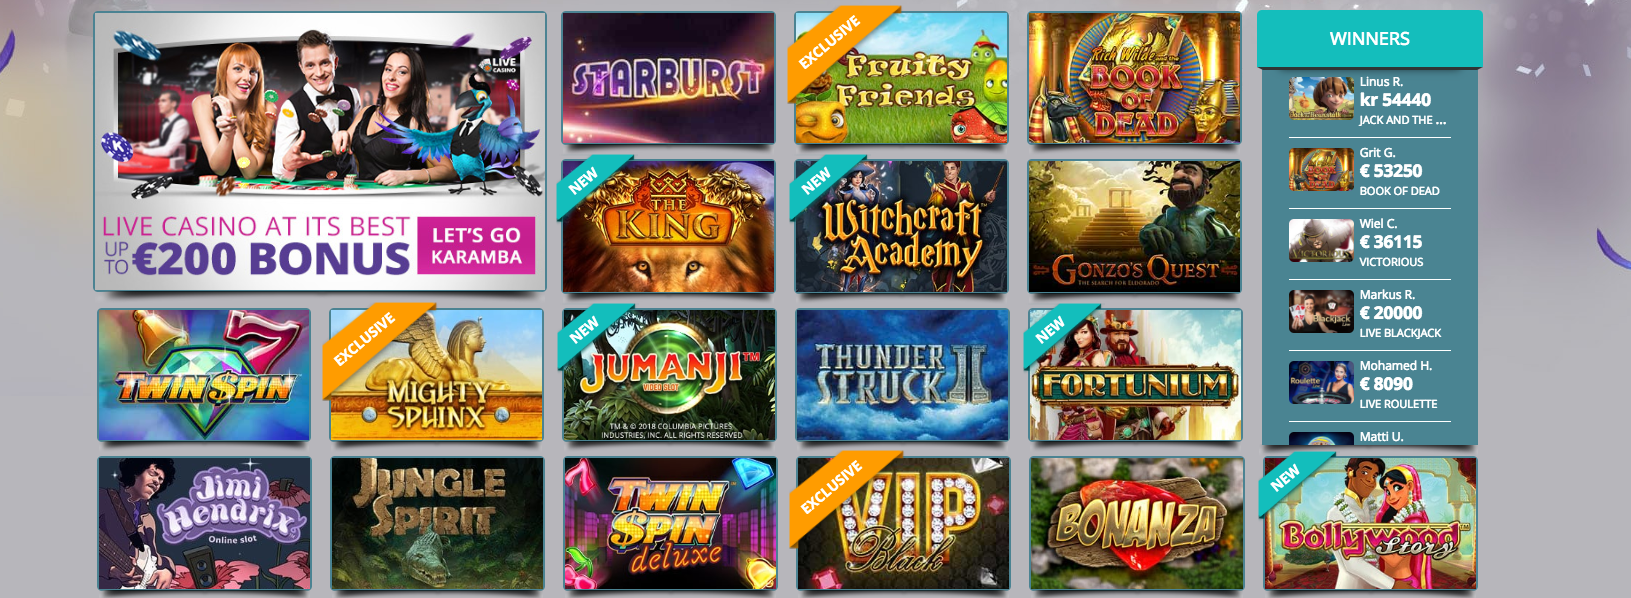 Some of the popular games at Karamba Casino